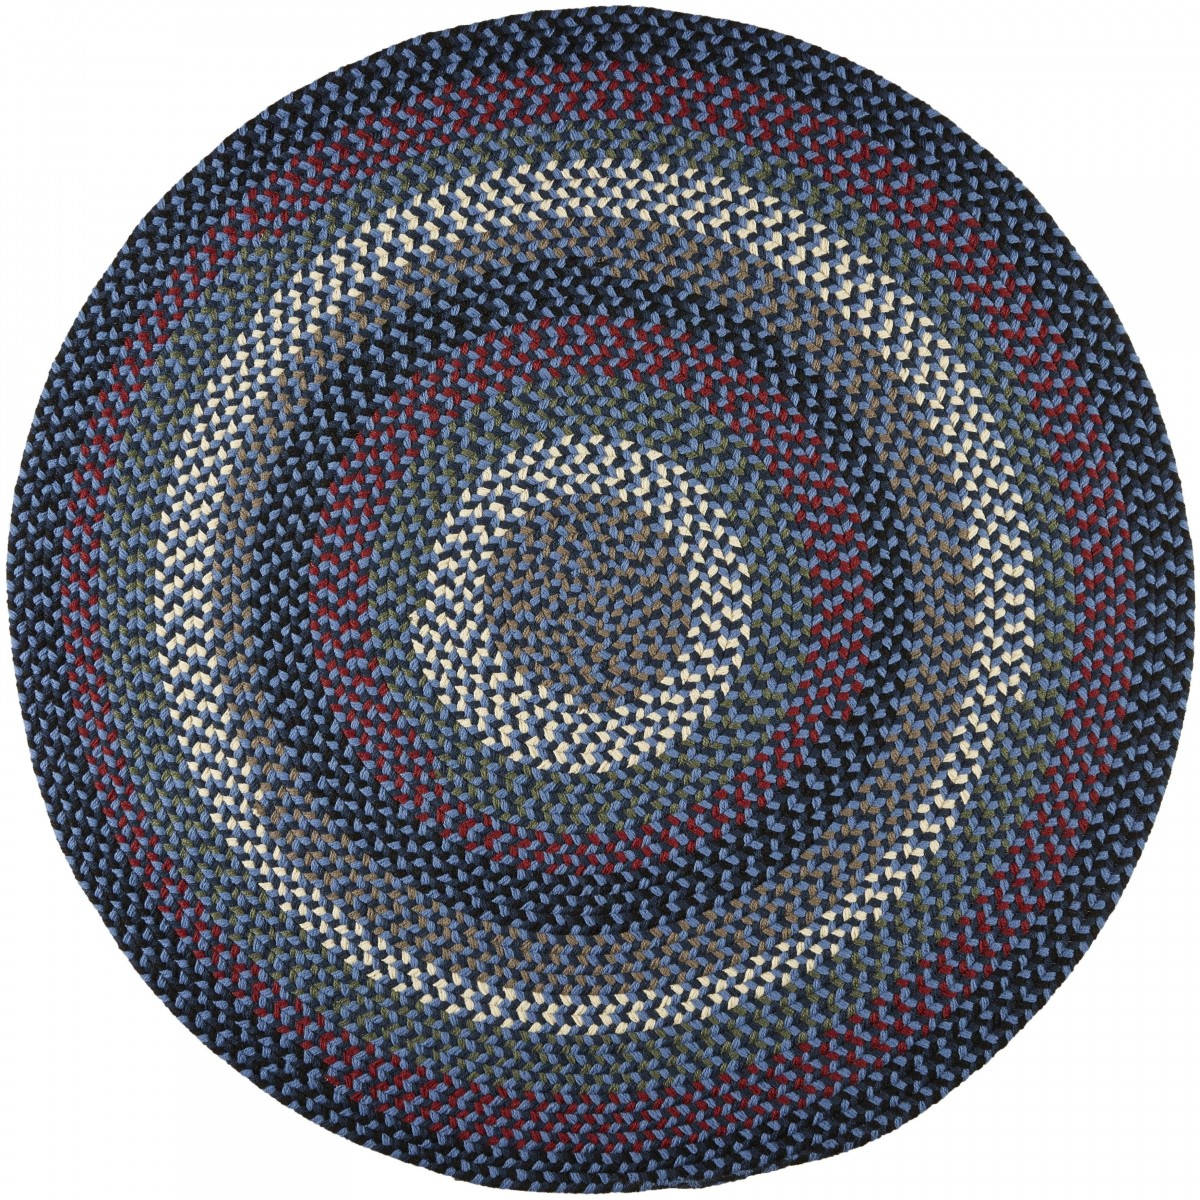 Rhody Rug Mayflower Old Glory 4' Round Rug